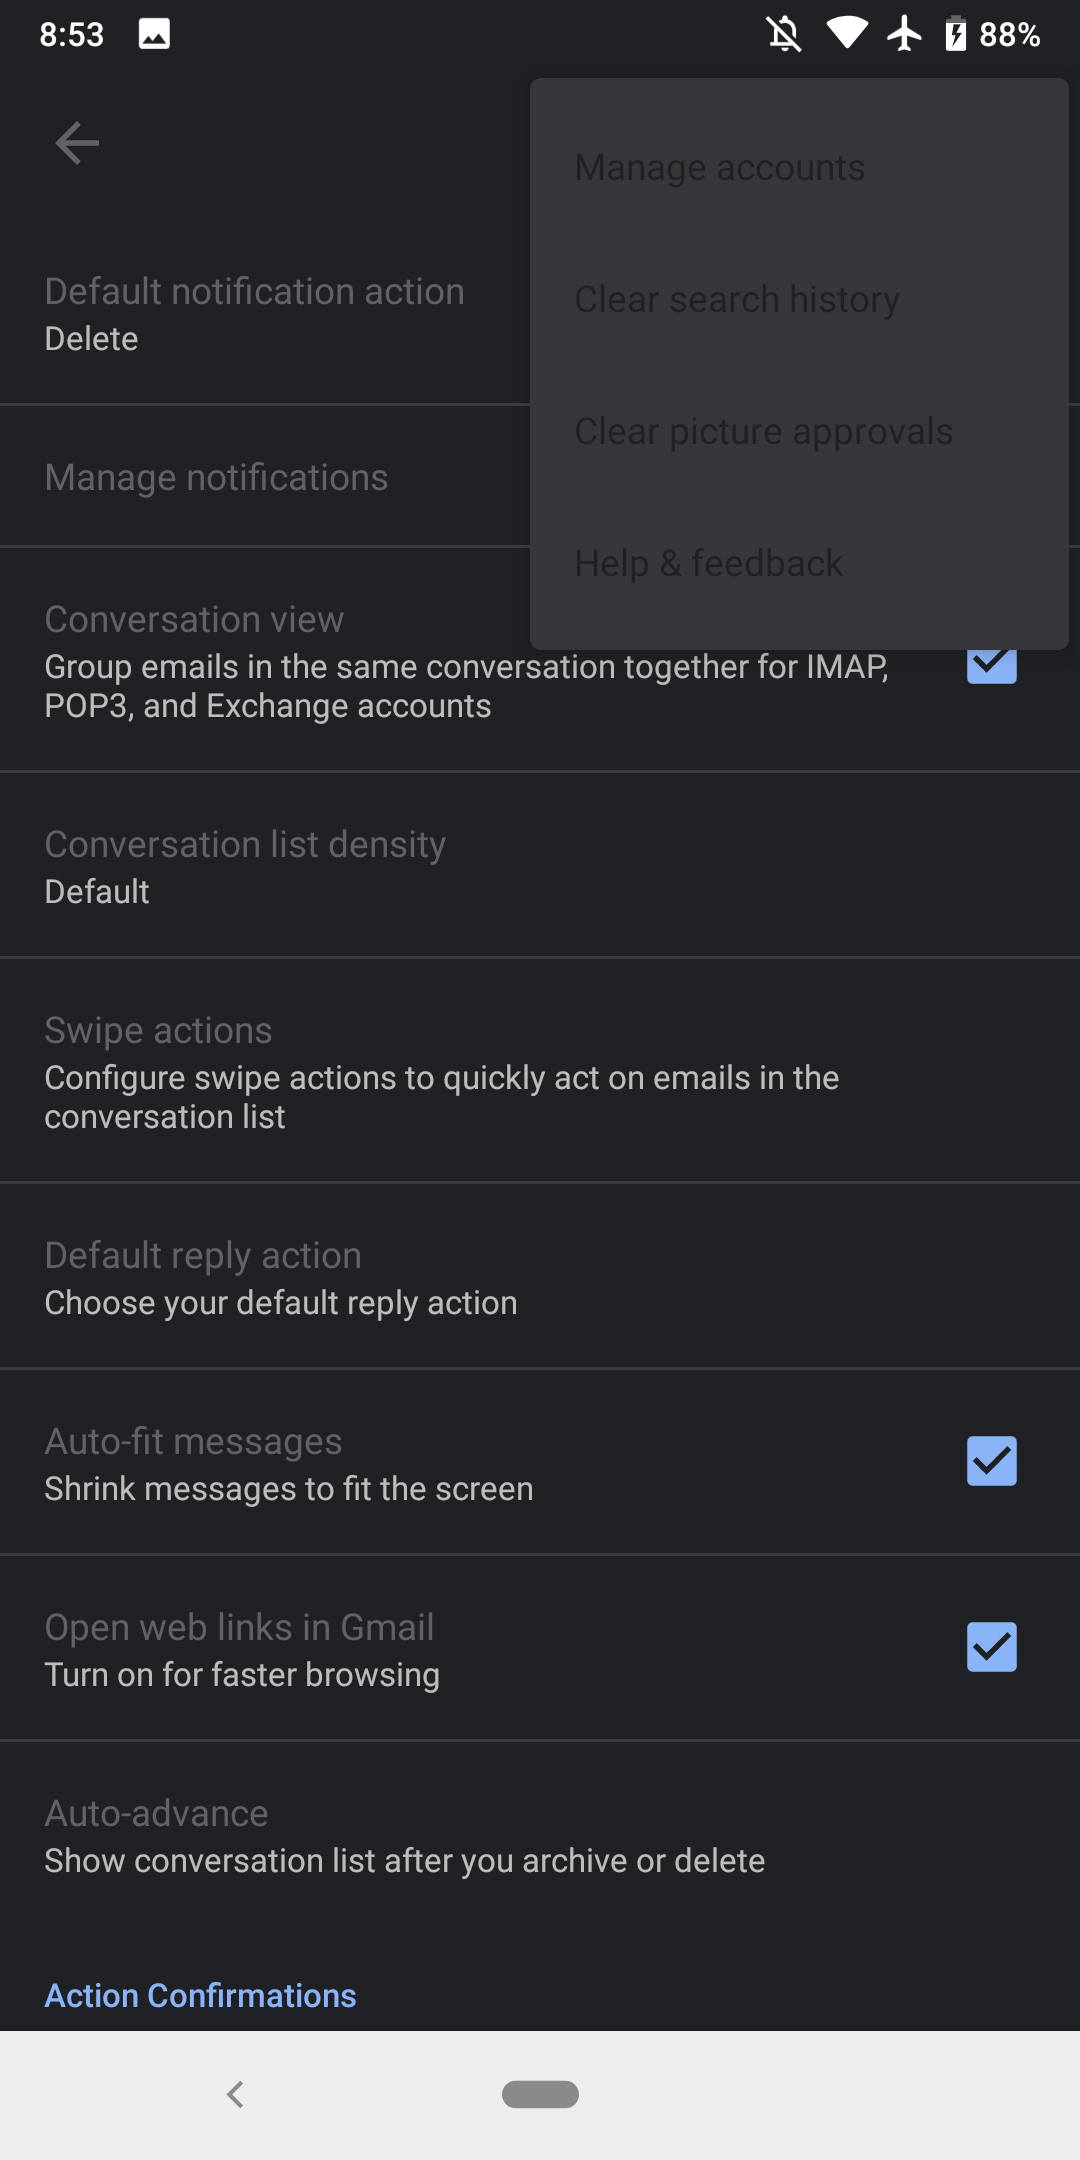 Gmail for Android gains buggy dark theme in settings - 9to5Google